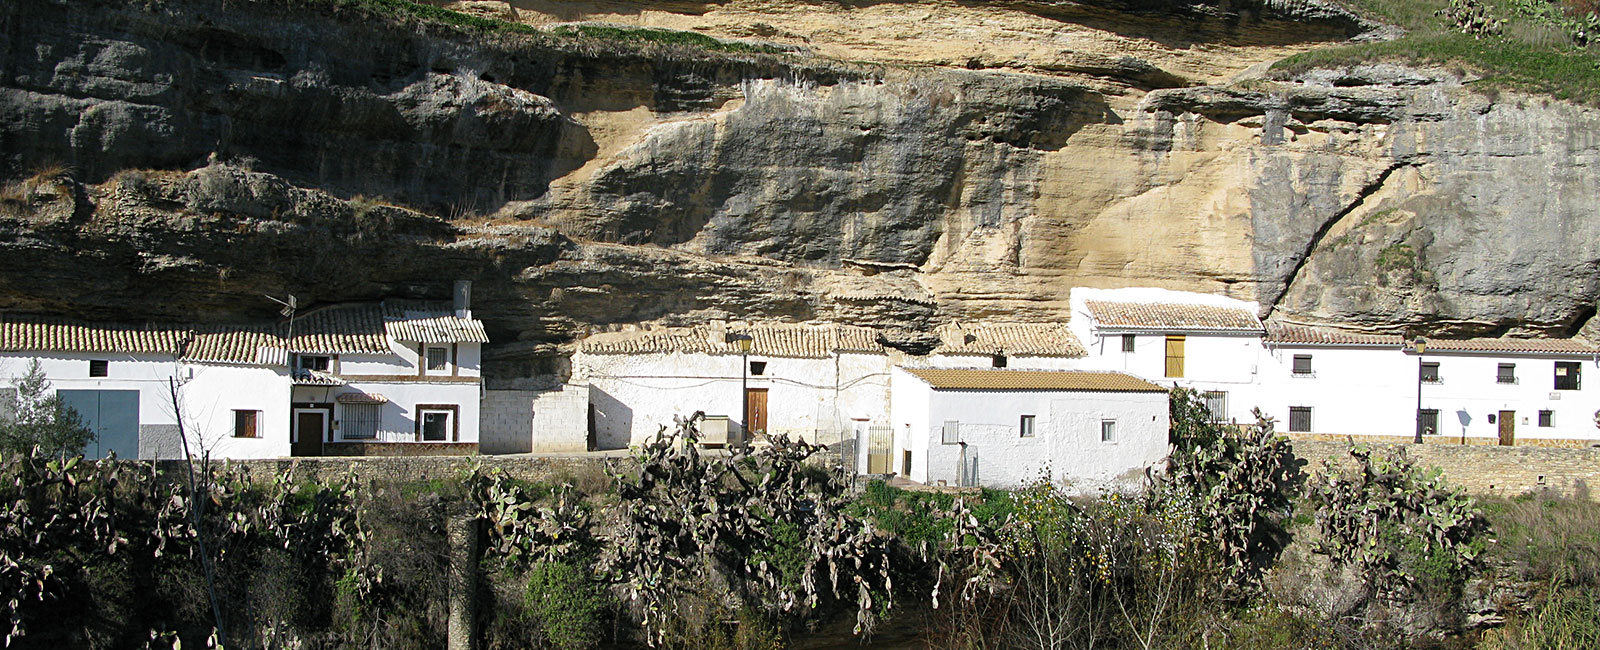 Houses in Setenil de las Bodegas, Andalusia, being built into the rock walls of the gorge of Rio Trejo